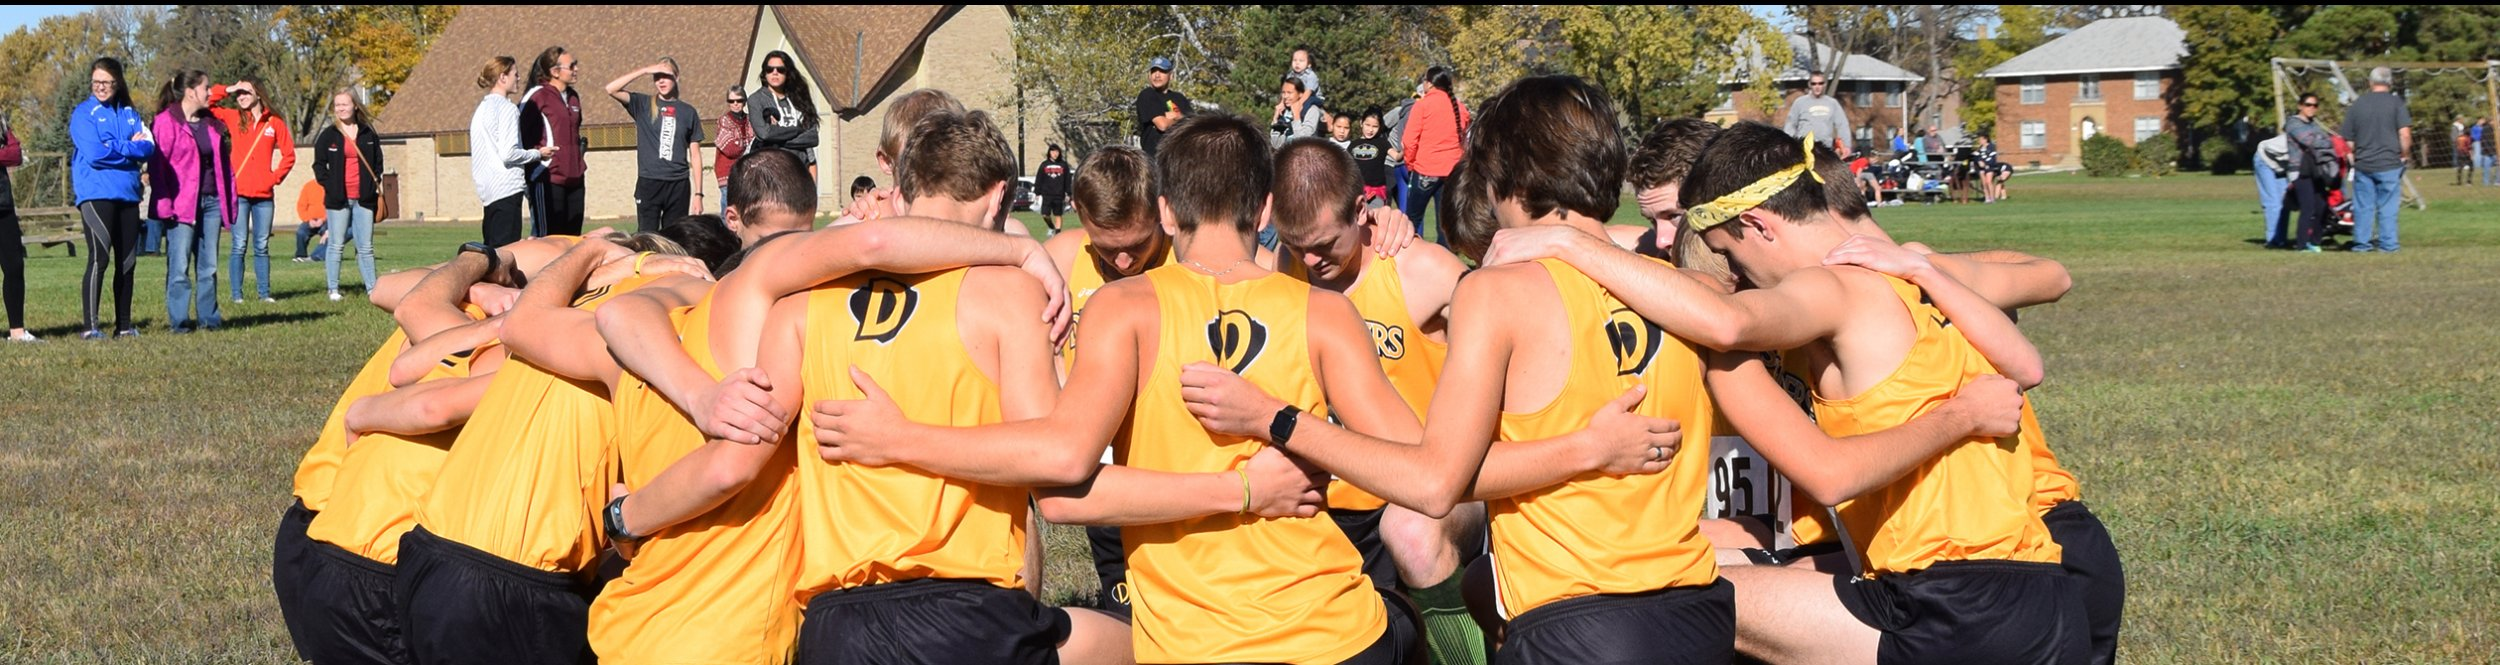 The men's cross country team huddles together.